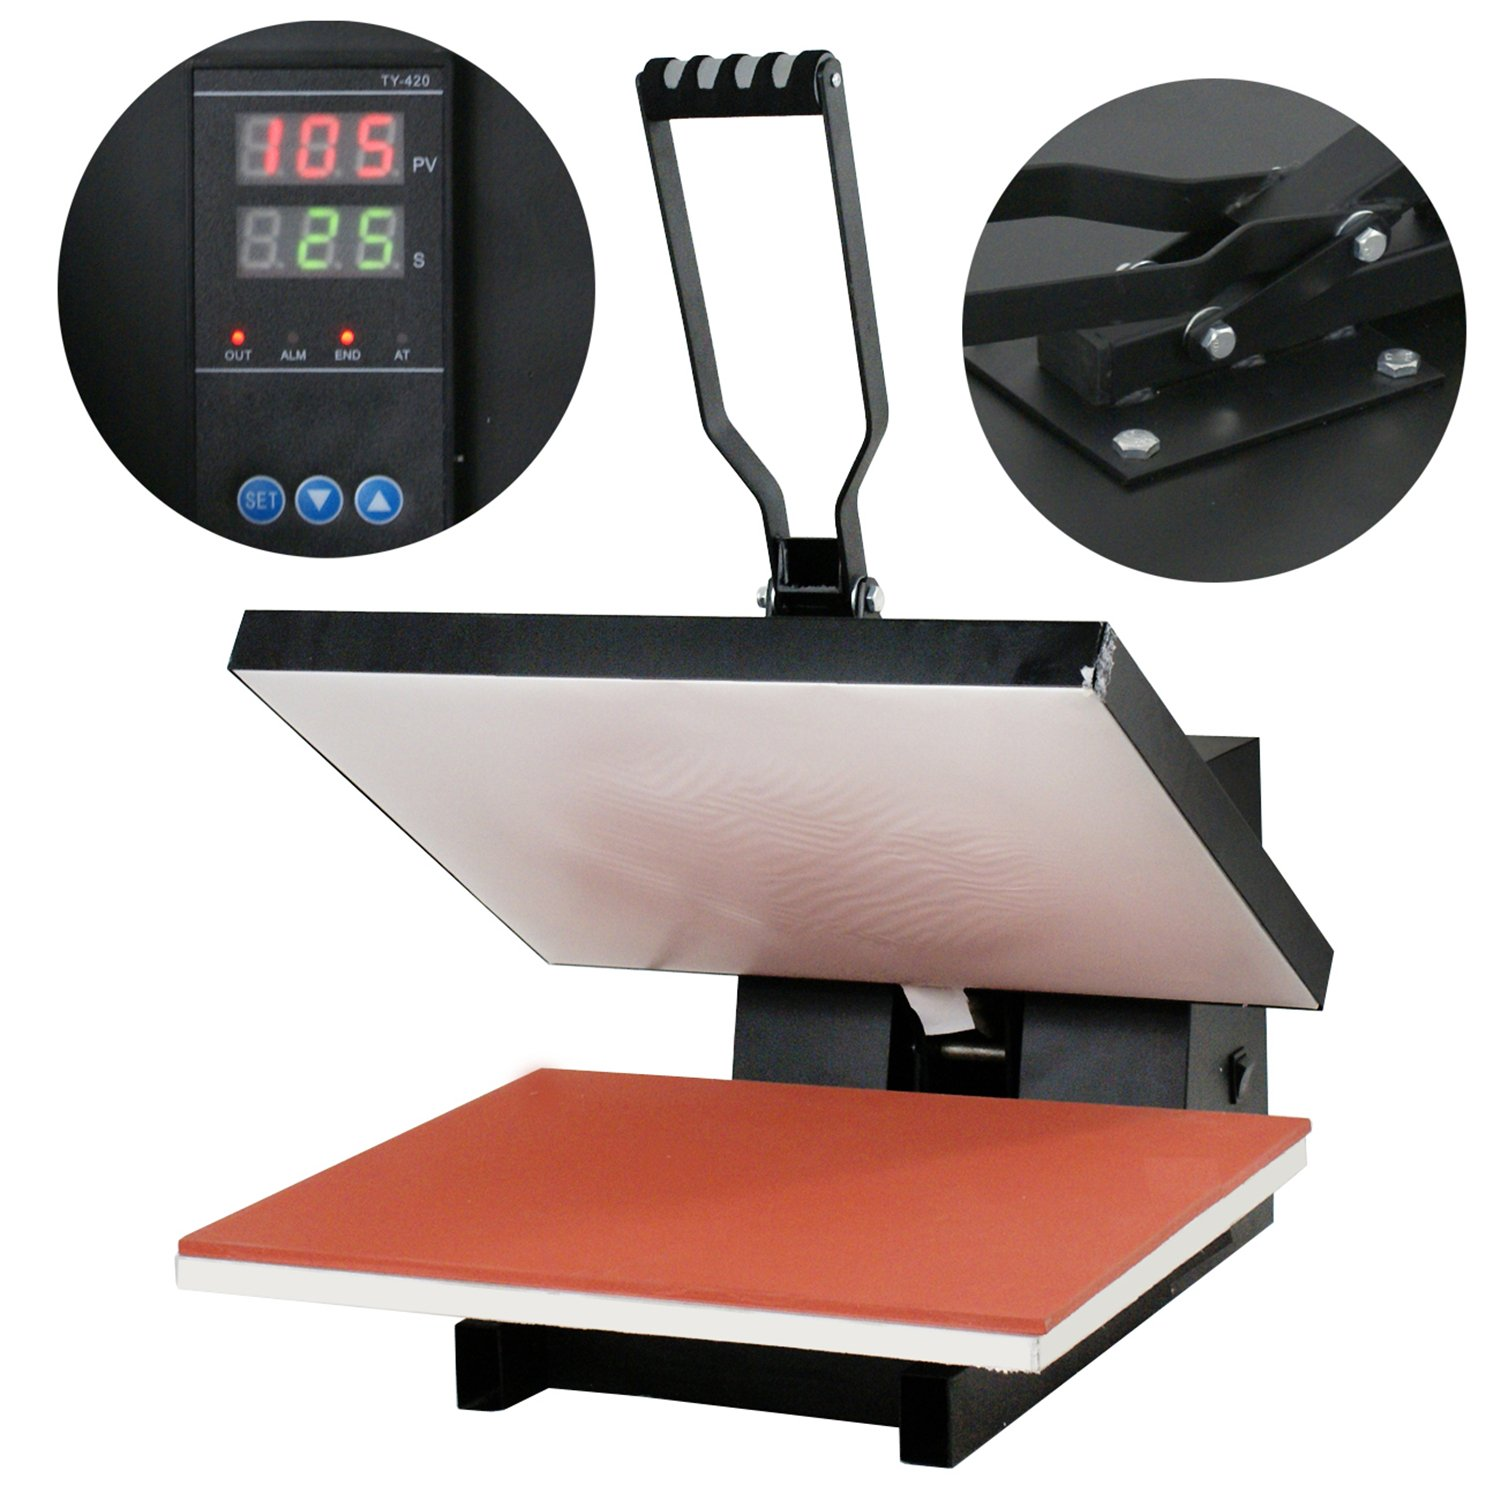 F2C16''x 20'' Digital Controller Sublimation New Clamshell Heat Press Machine T-shirt (16''x 20'')